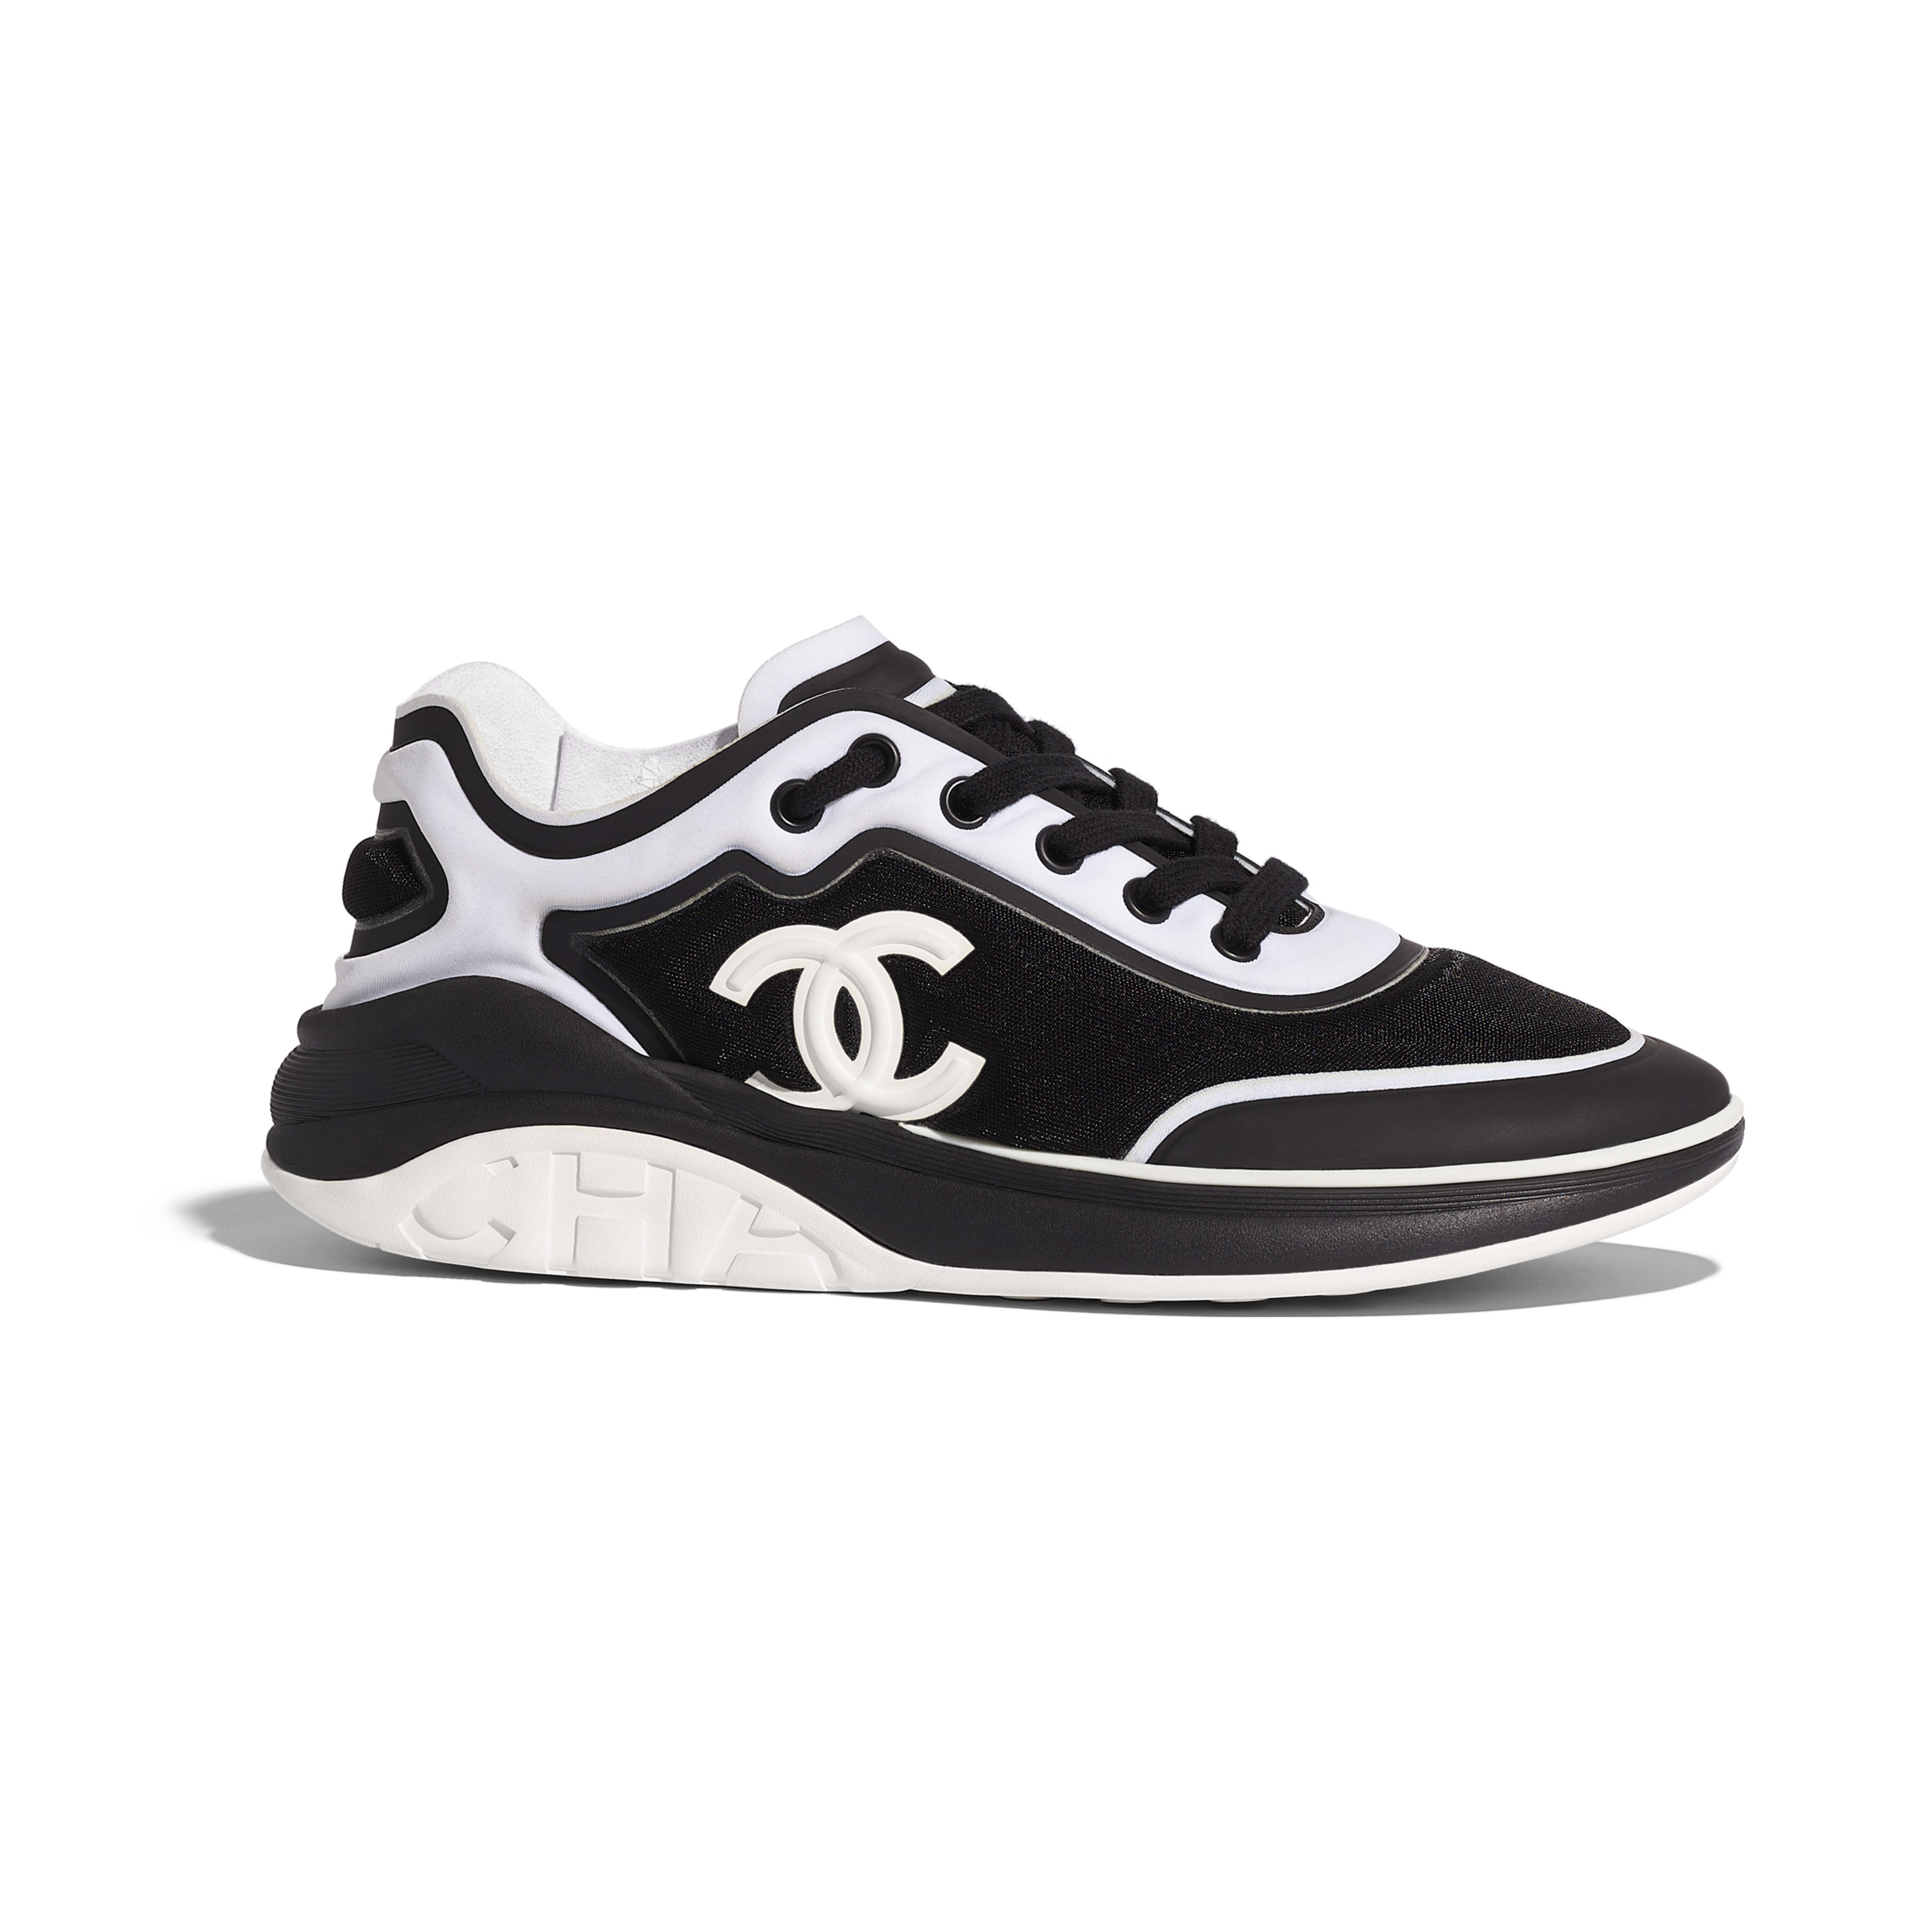 Sneakers - Black & White - Mesh & Lycra - Default view - see full sized version